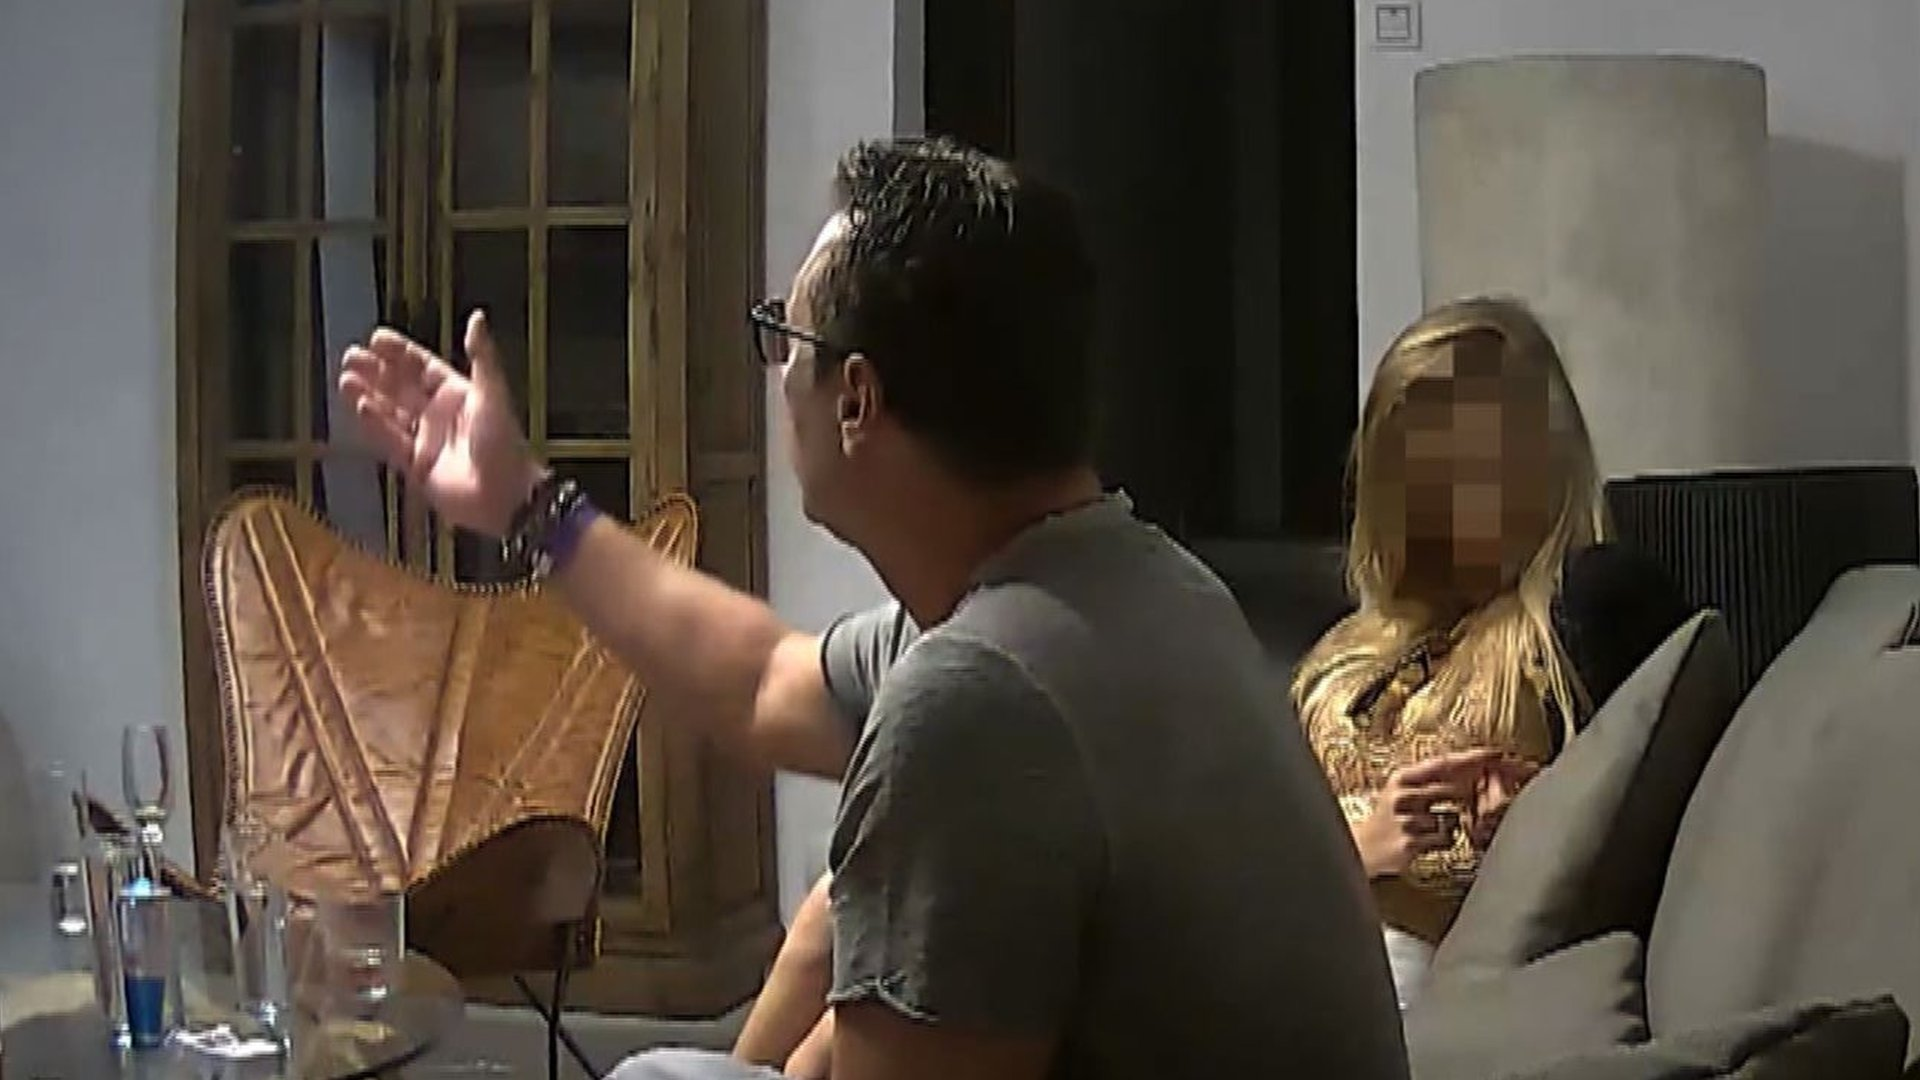 Austria scandal: Lawyer says he was part of Ibiza sting